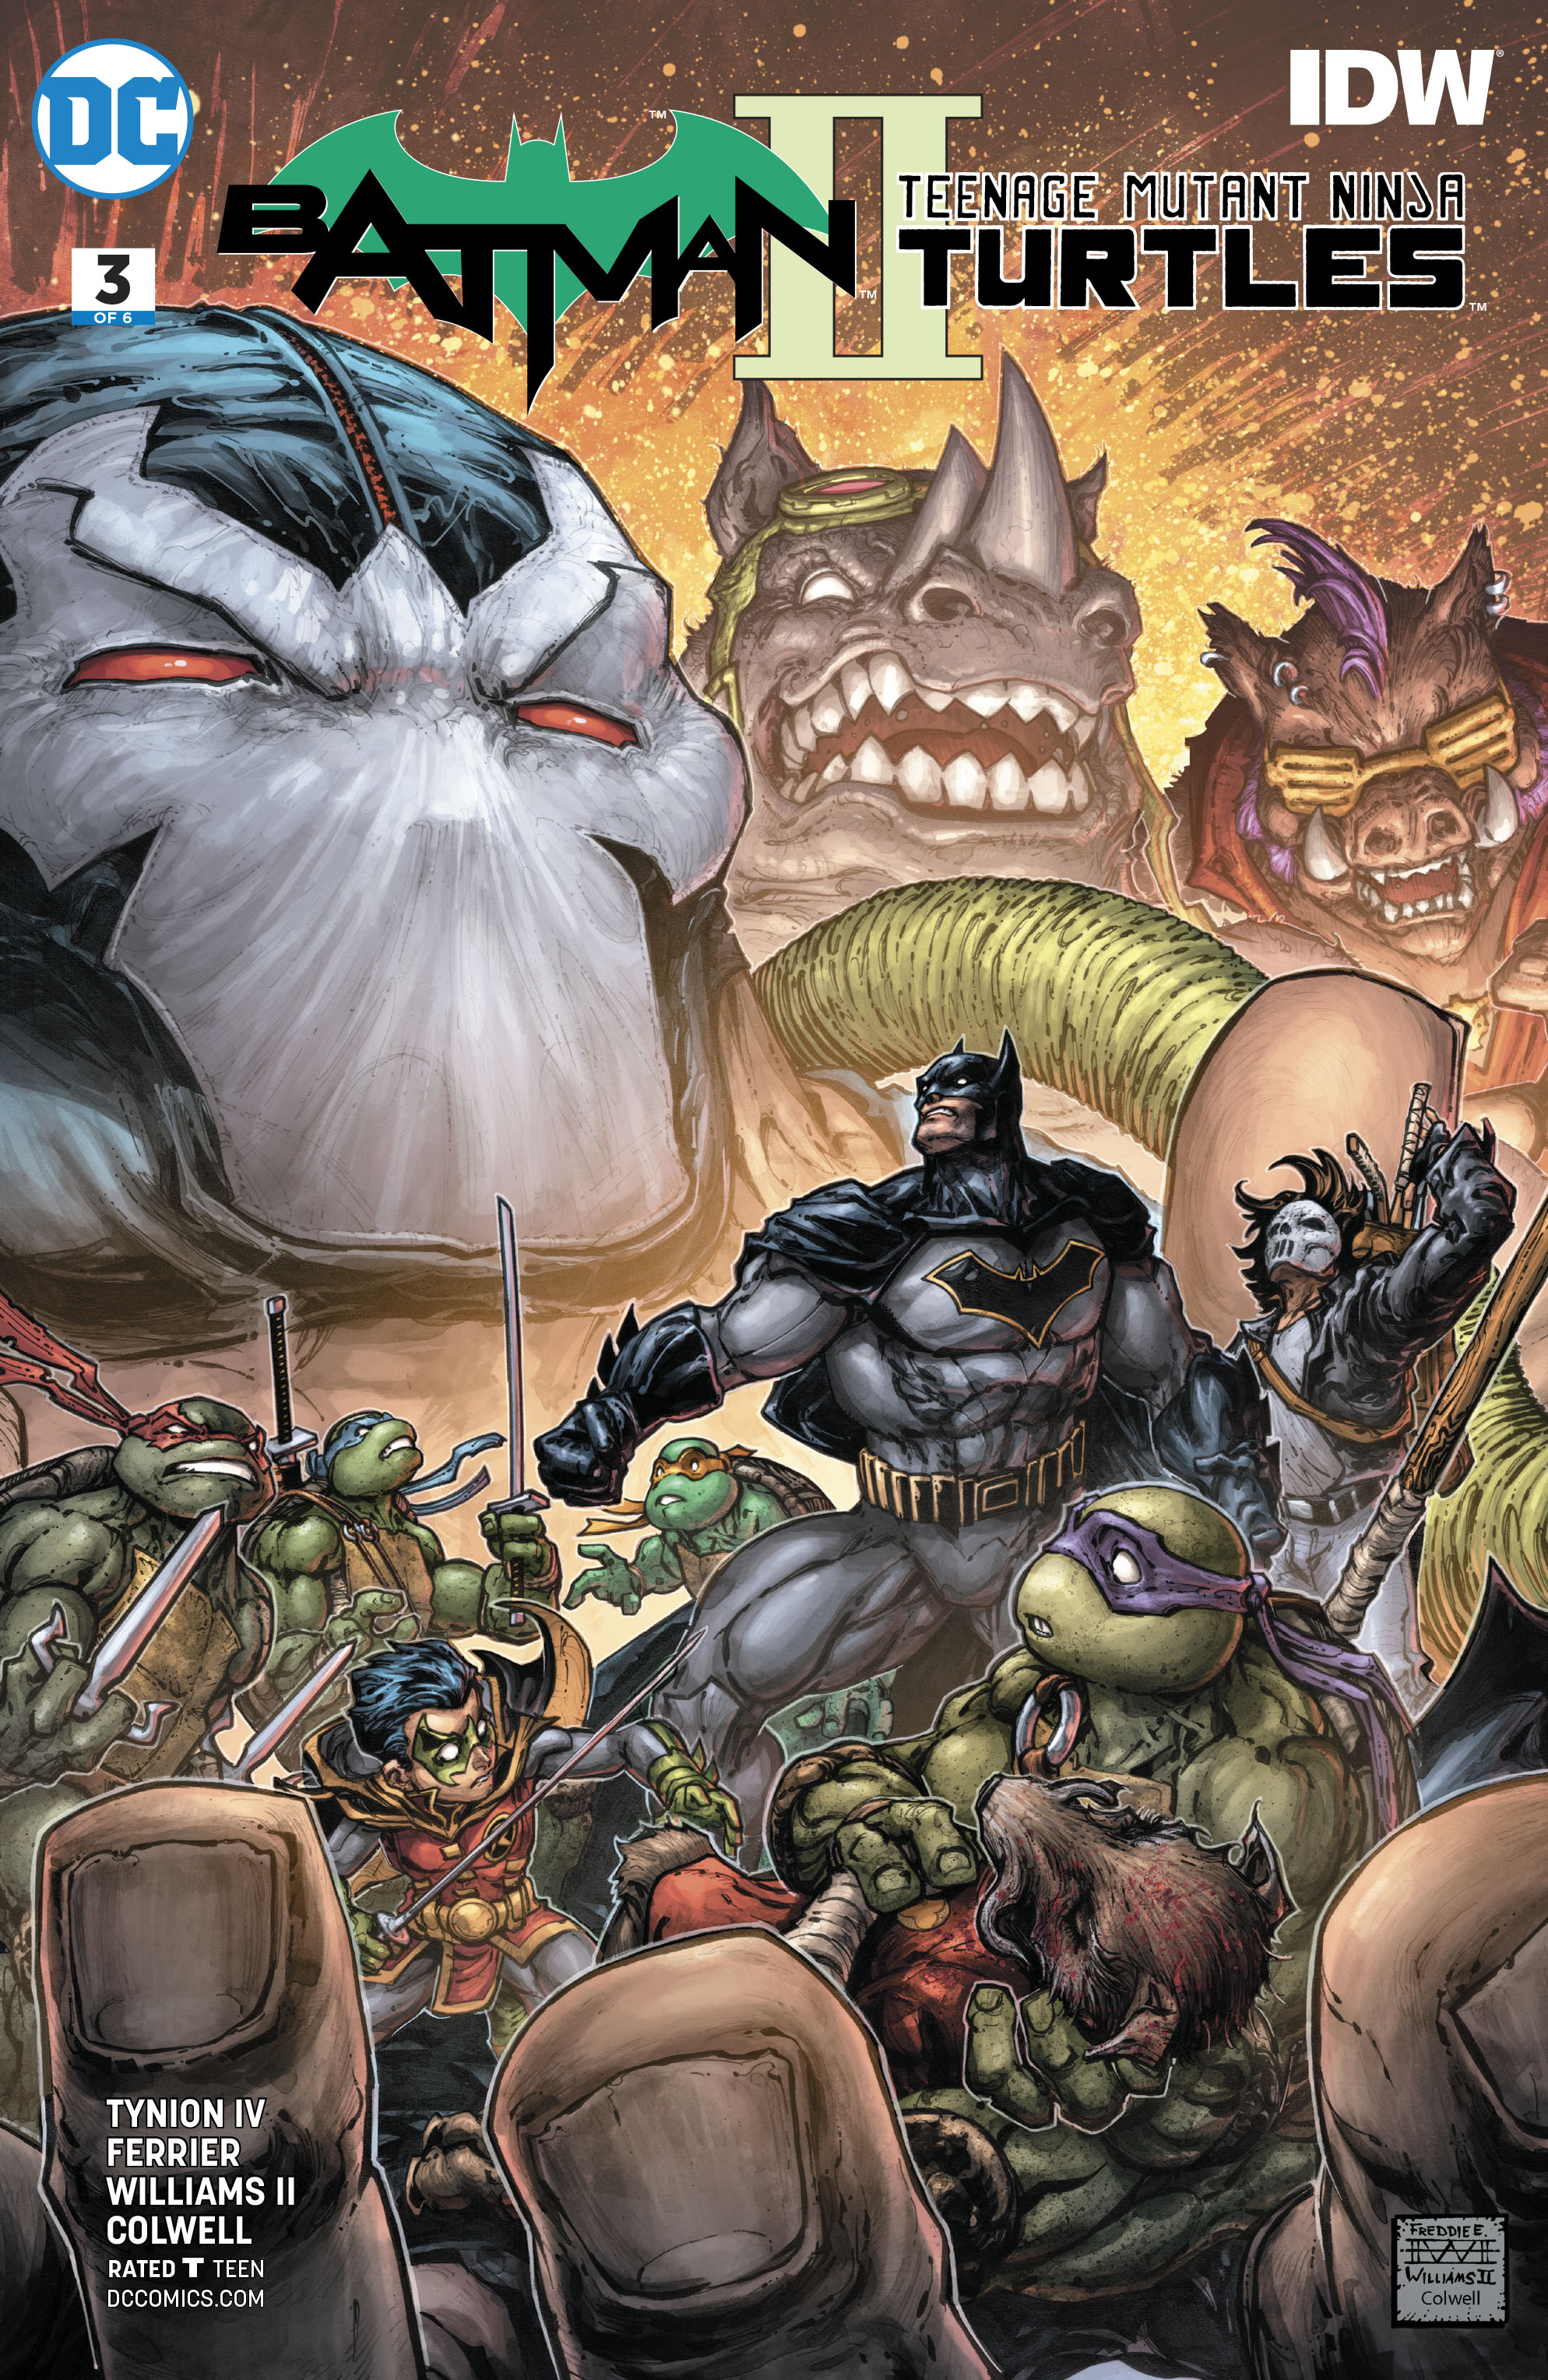 BATMAN TEENAGE MUTANT NINJA TURTLES II #3 (OF 6)